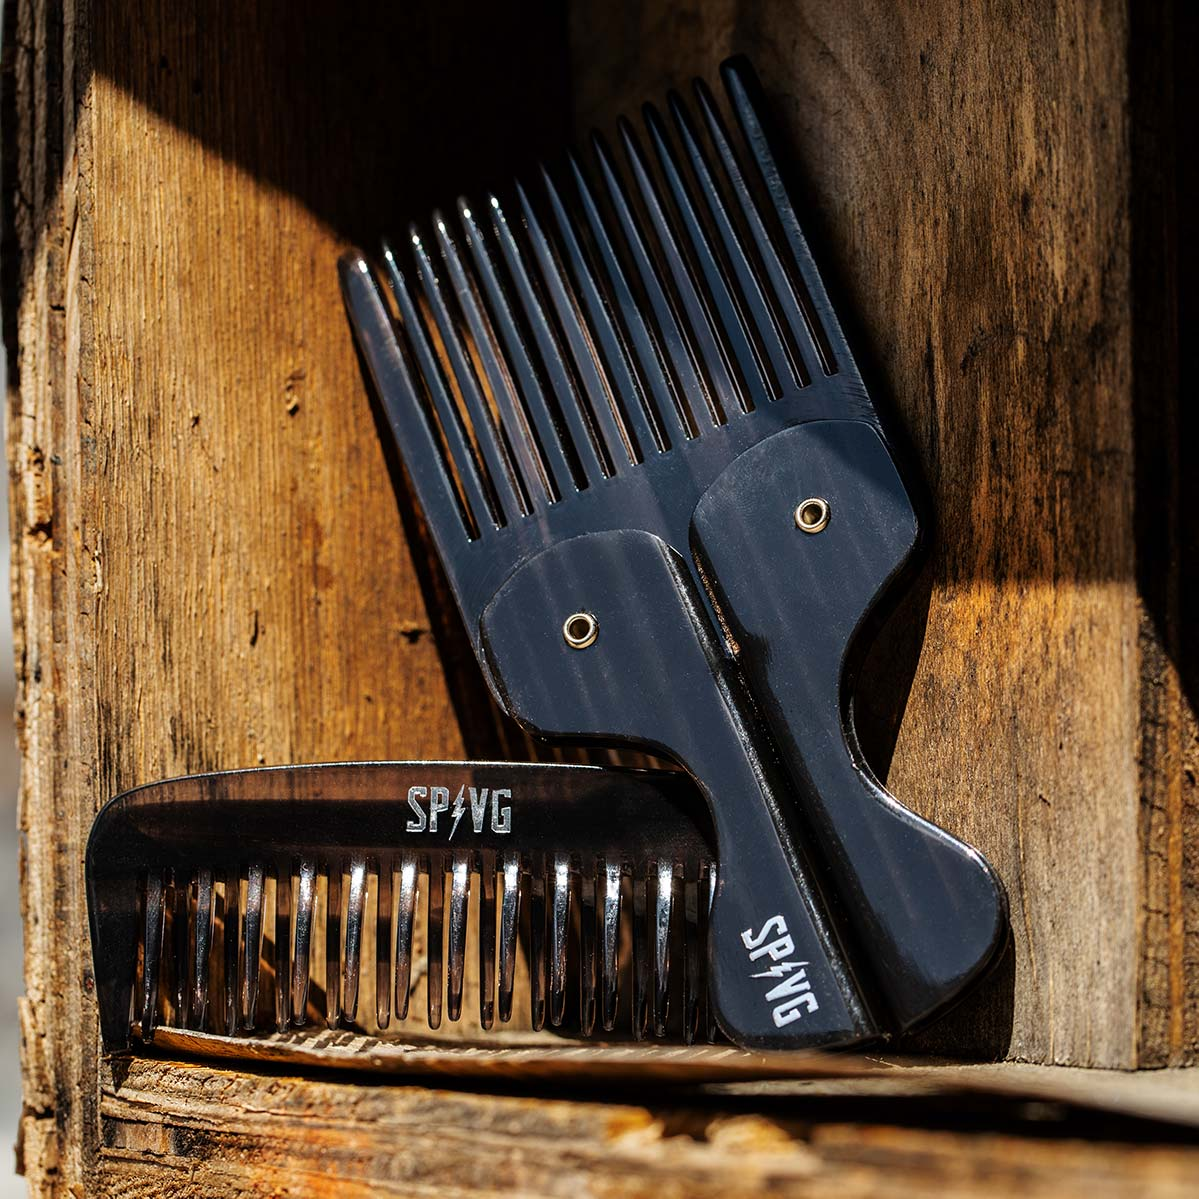 9f5900ee774 Suavecito x Violent Gentlemen limited edition beard combs leaning on wood